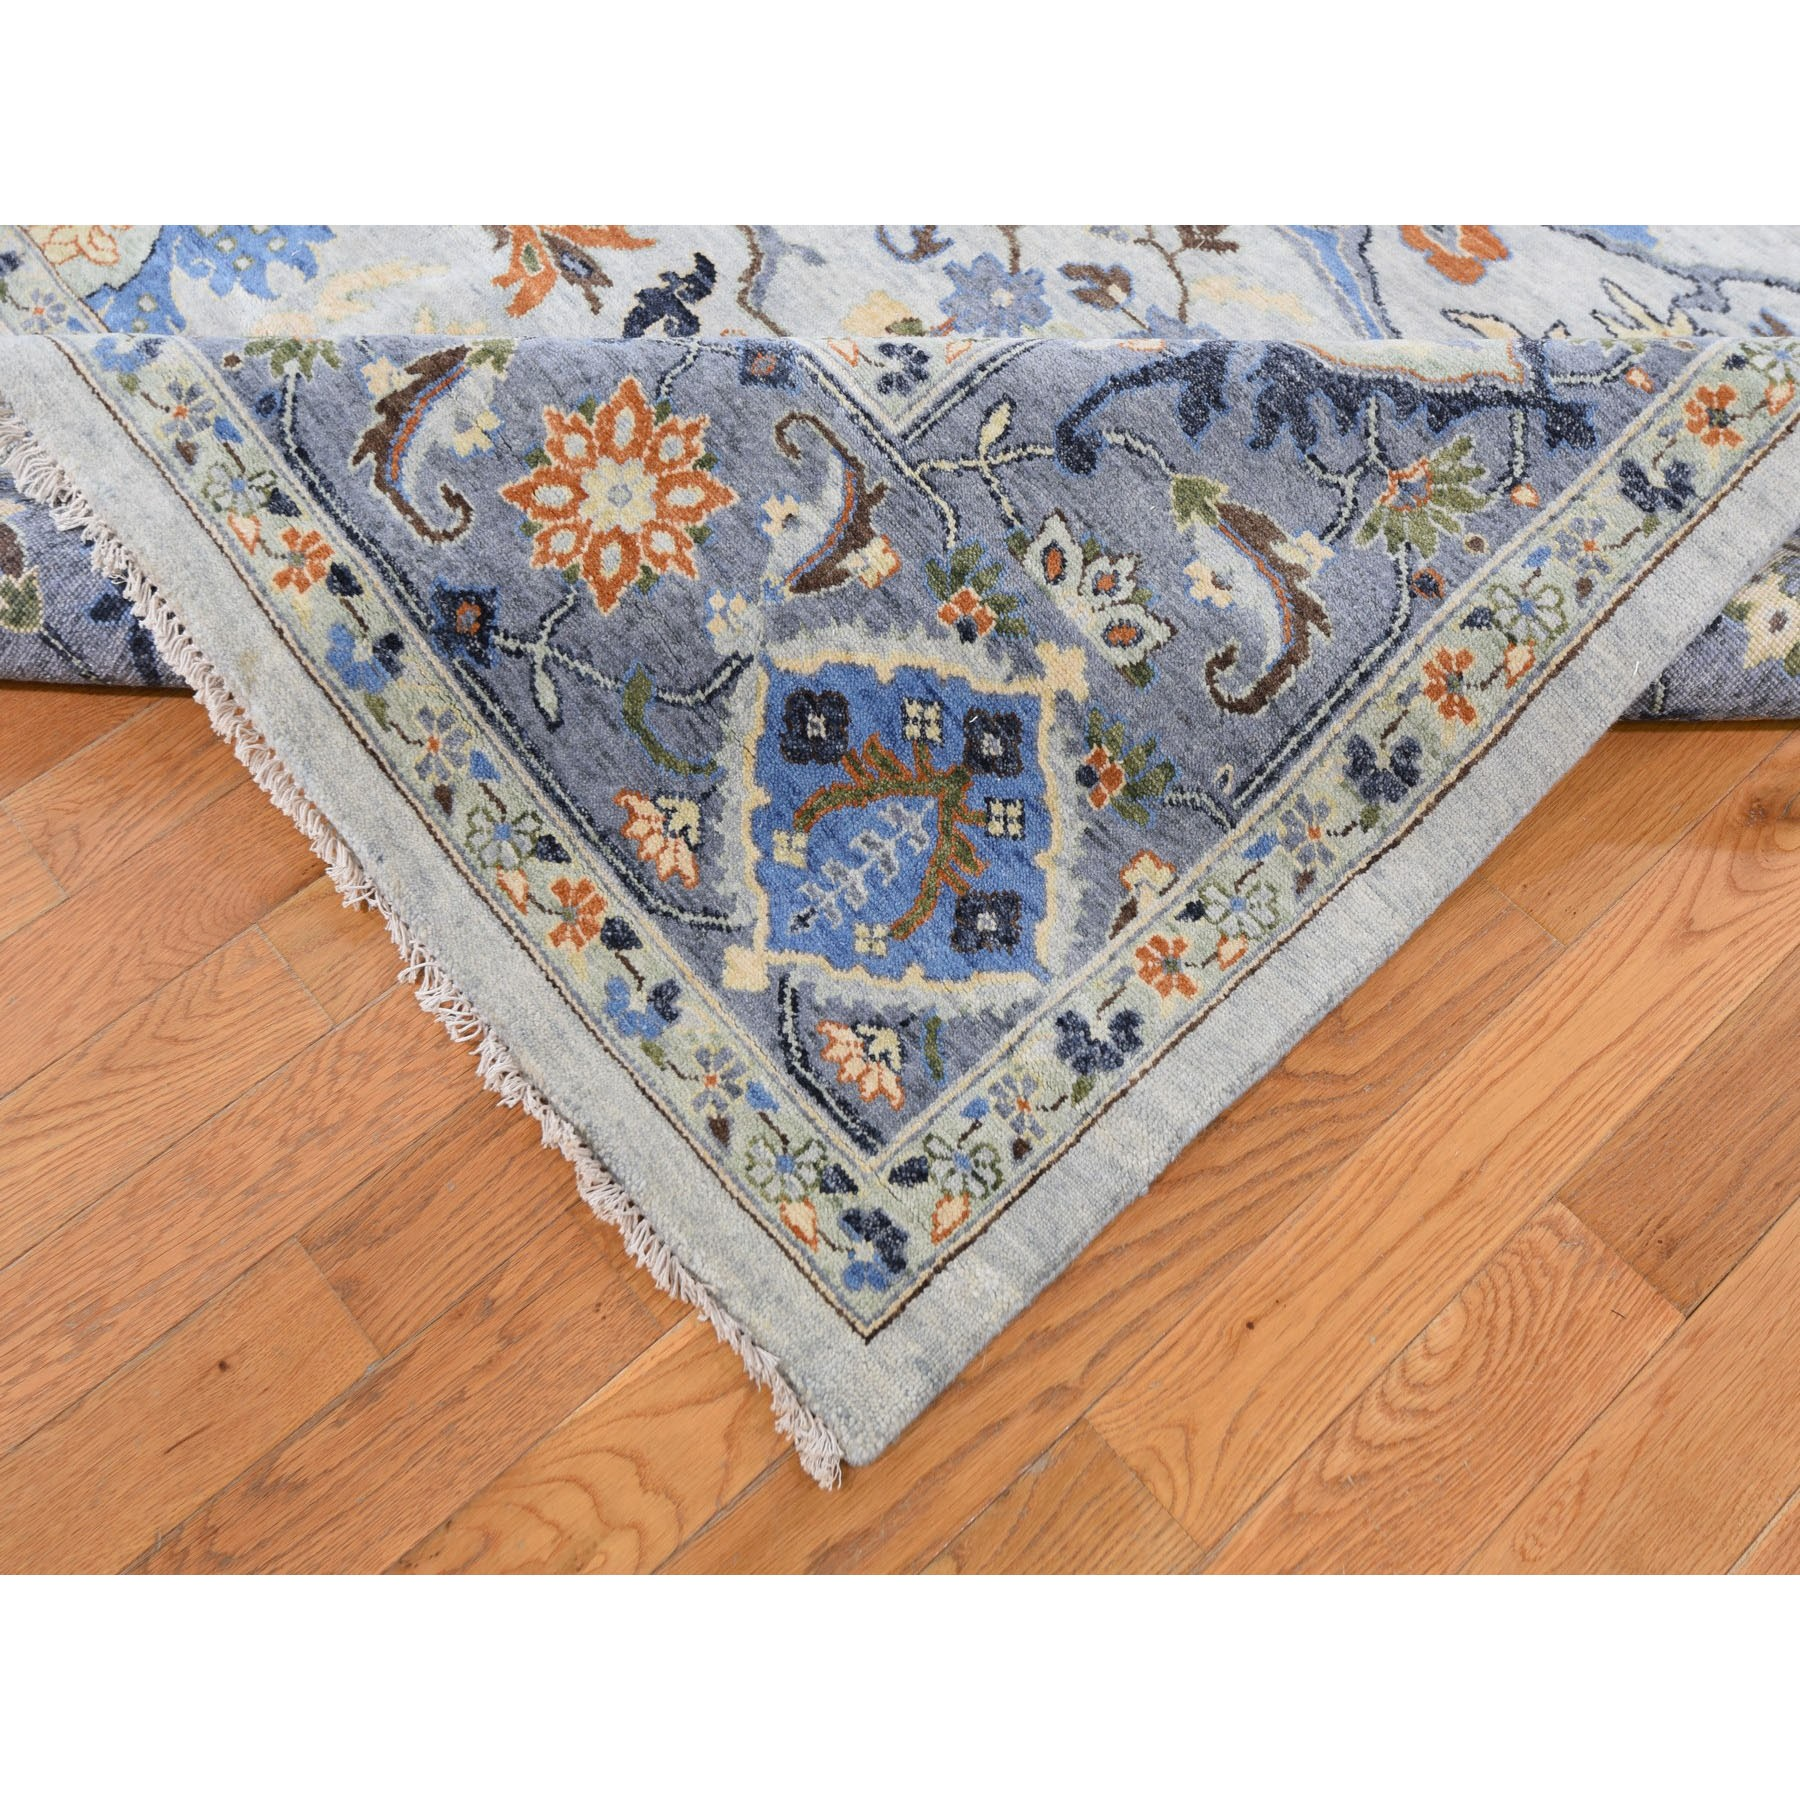 "8'10""x11'8"" Dense weave Oushak Gray With Pop Of Color Hand Woven Oriental Rug"